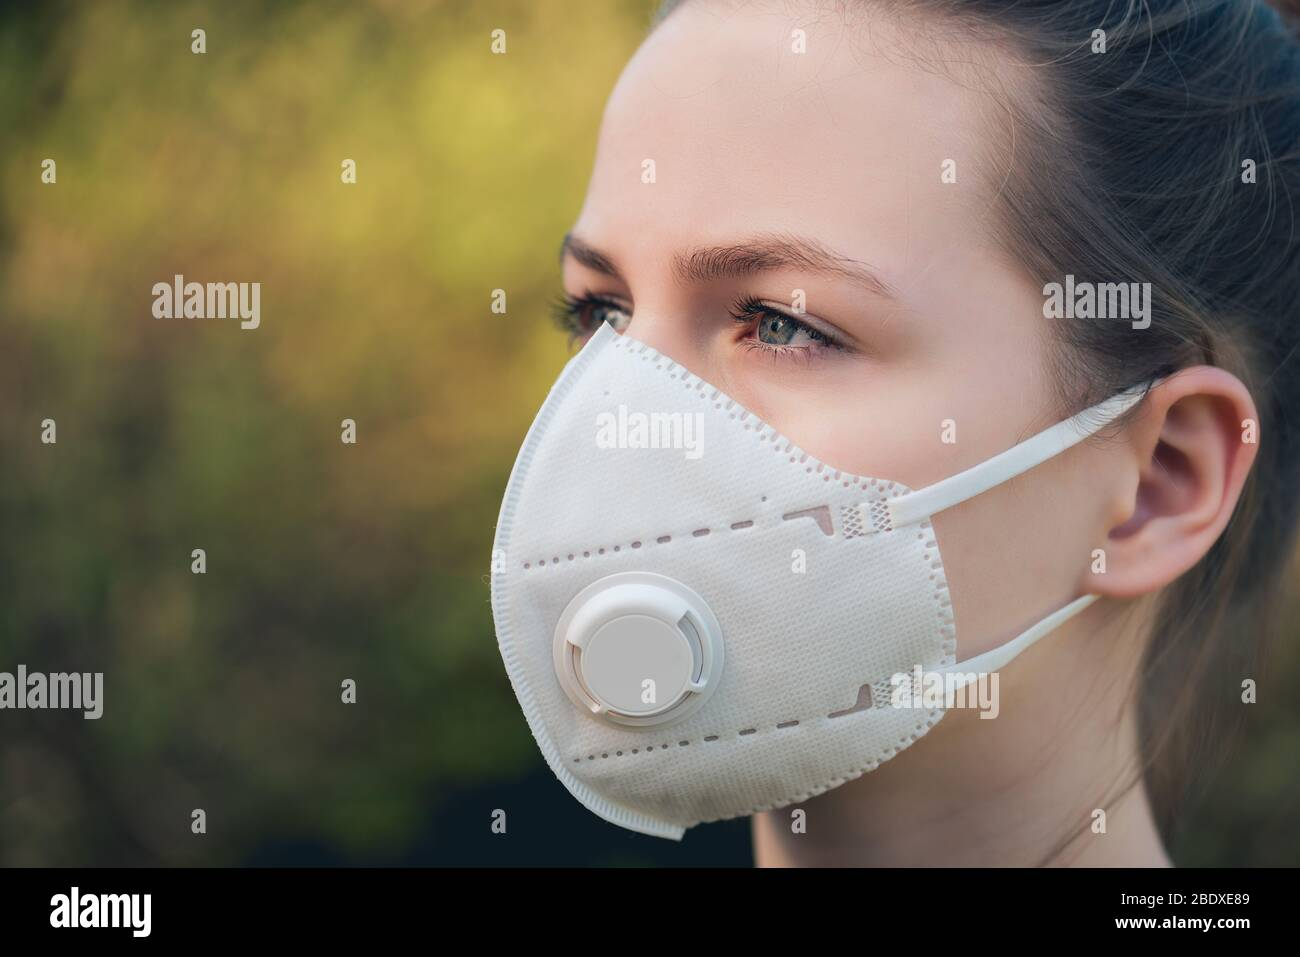 young girl with anti-virus anti-smog mask on her face. Wearing hygiene masks reduces the risk of getting COVID-19 disease caused by coronavirus; it al Stock Photo